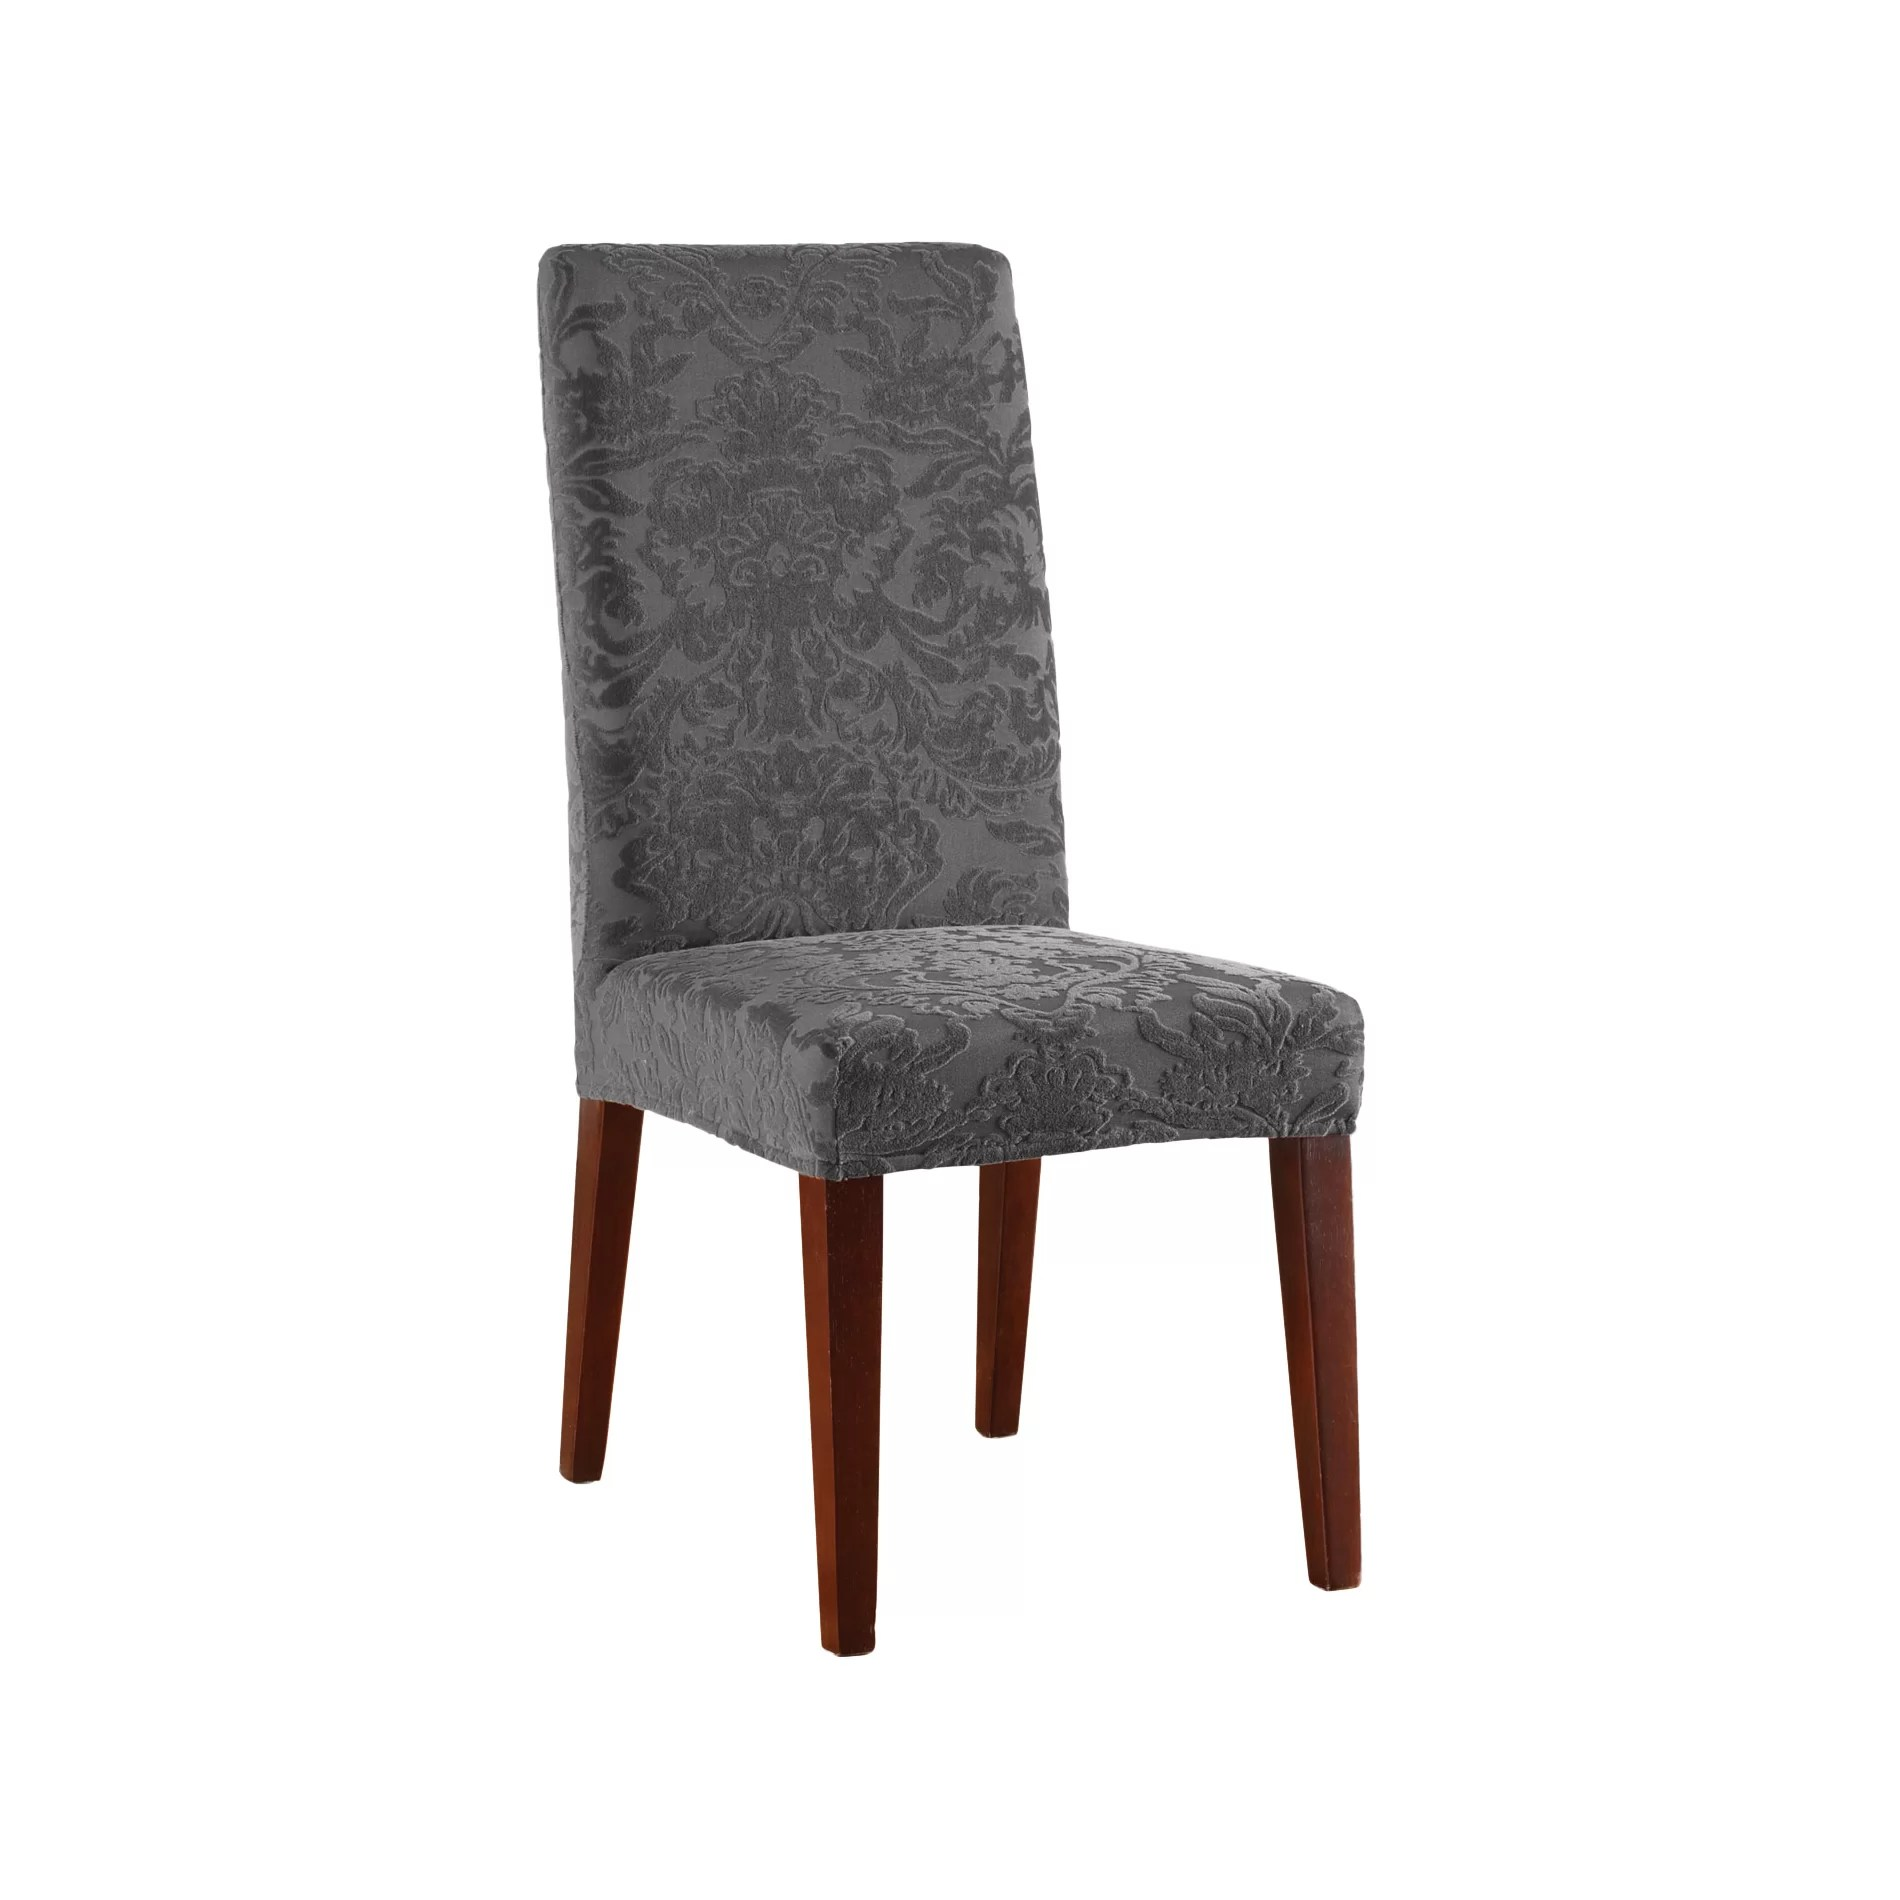 Dining Chair Slipcover Sure Fit Stretch Jacquard Damask Dining Chair Slipcover